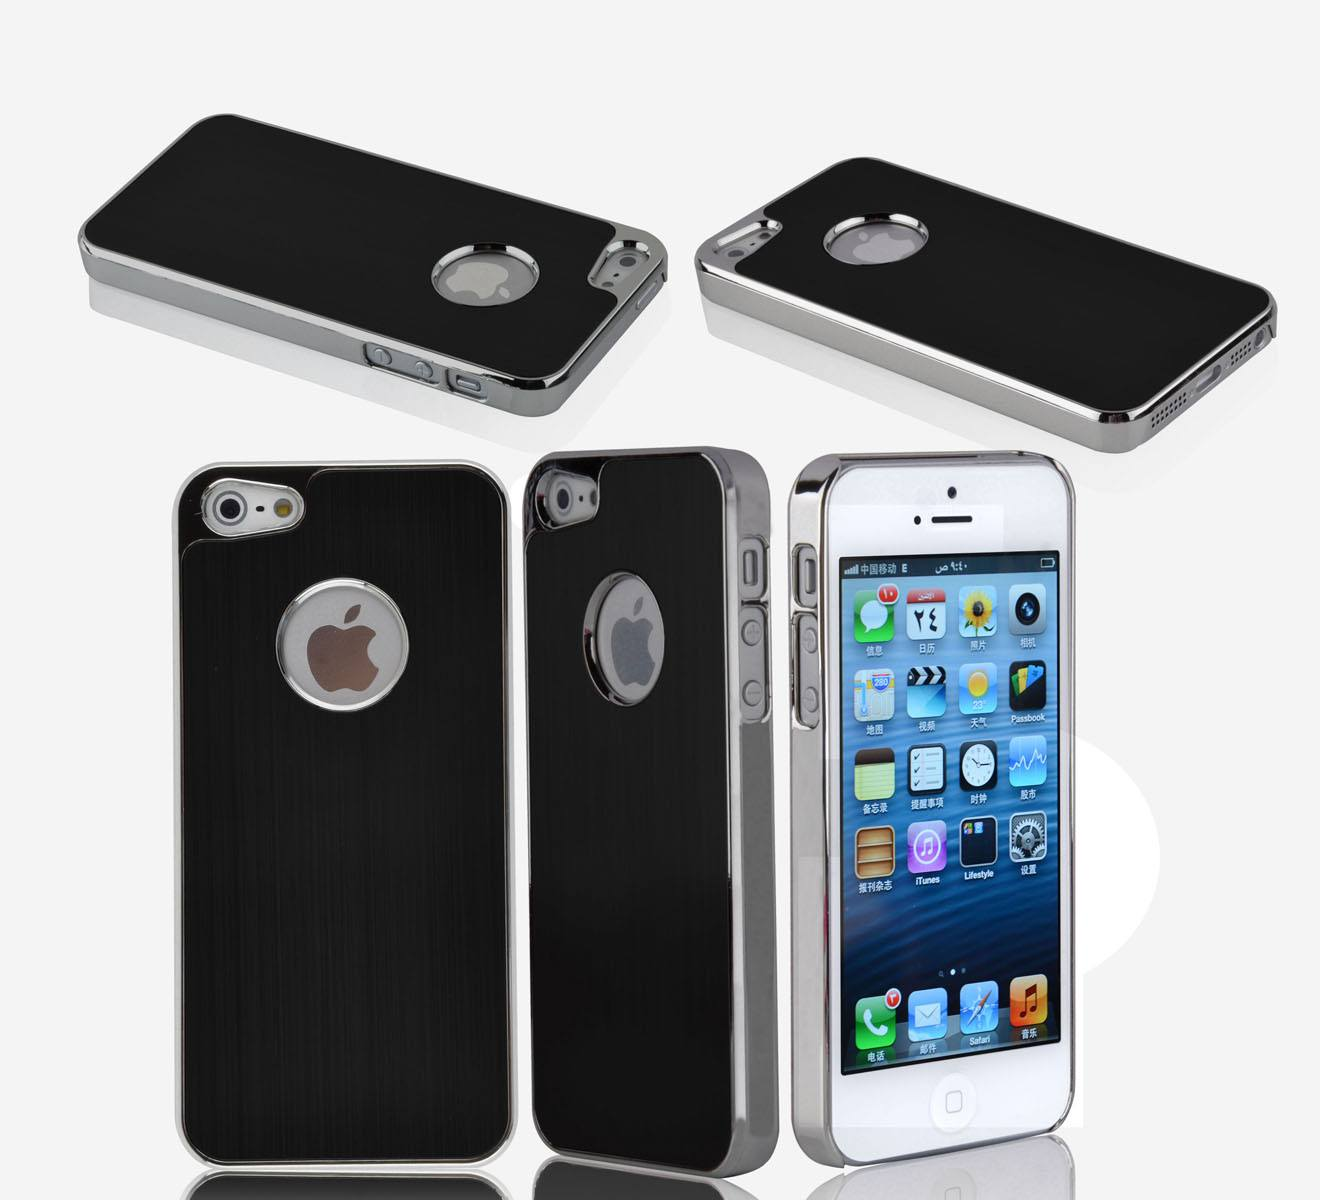 iPhone 5 Premium Brushed Aluminum Case - Black